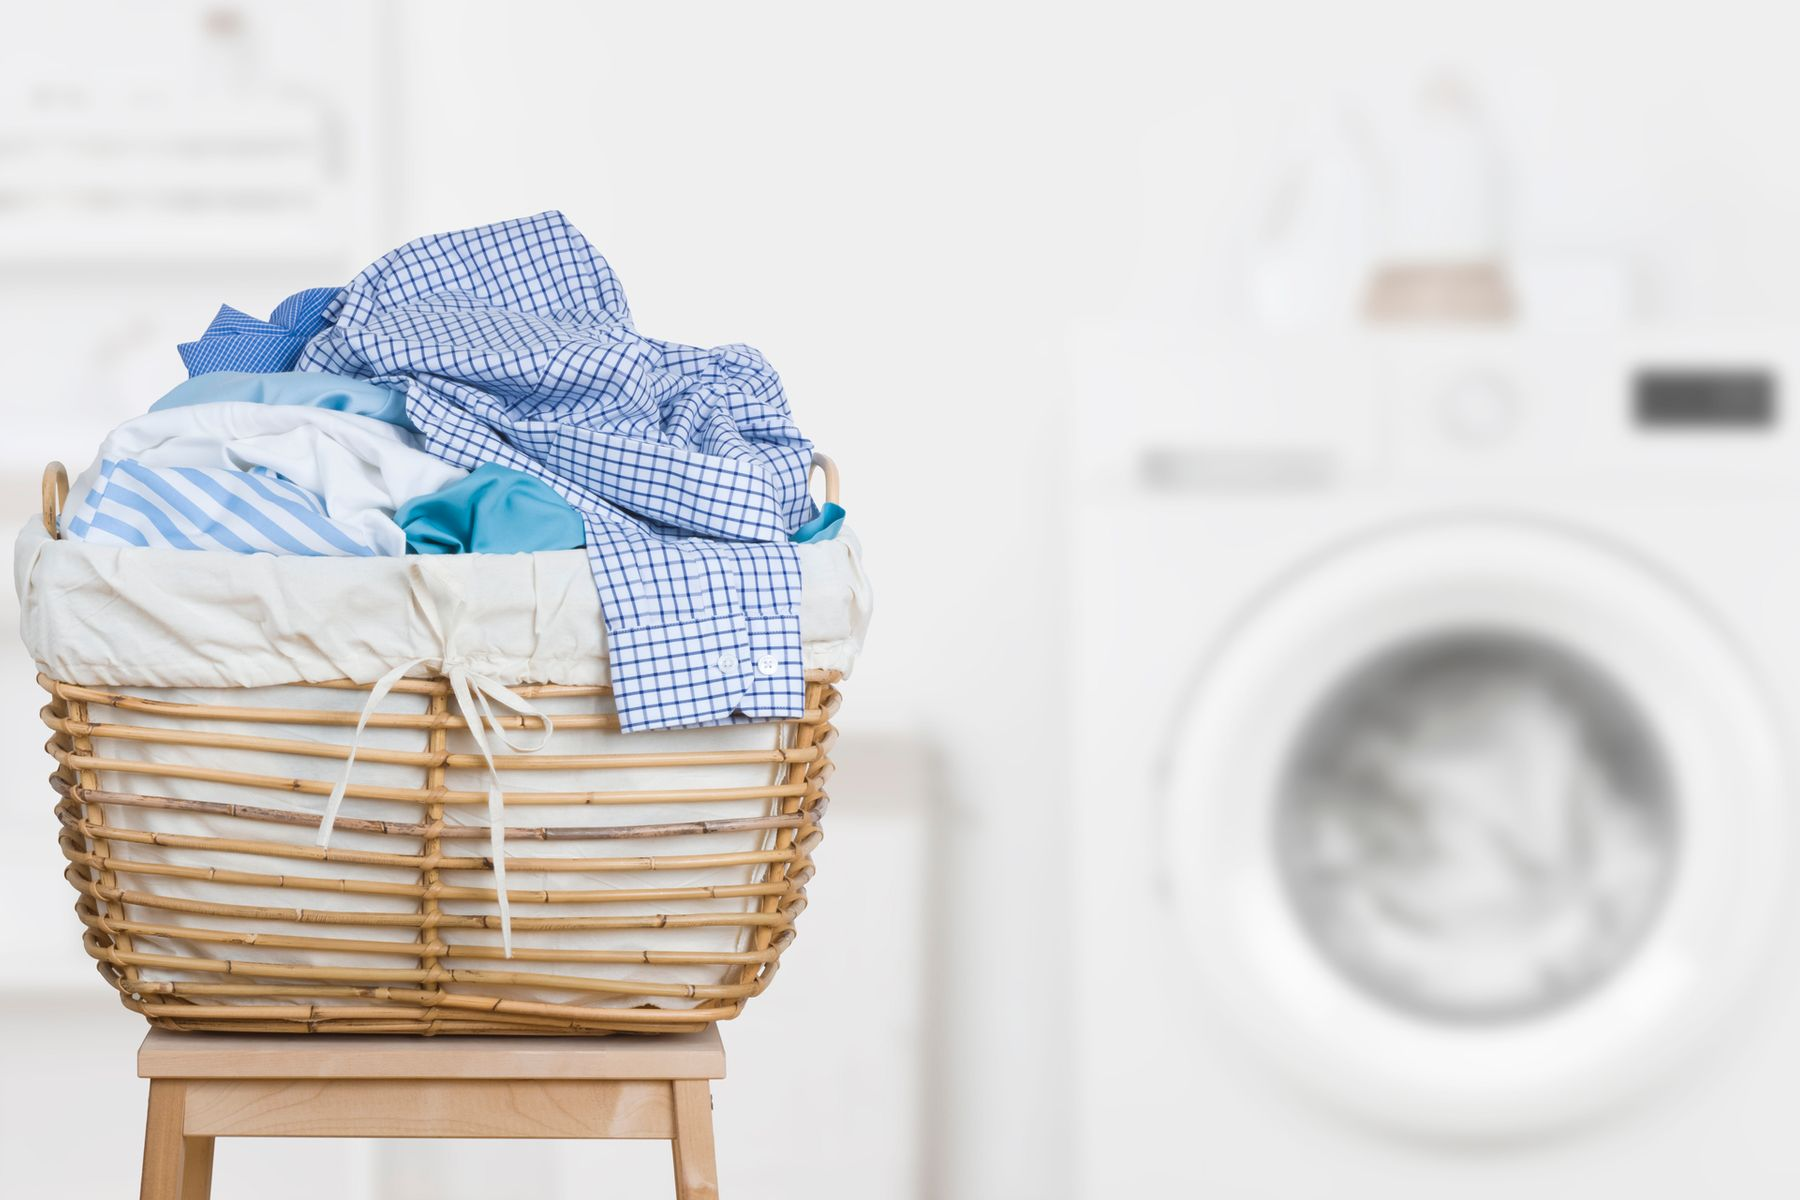 Pile of laundry about to be put into the washing machine to remove odours from clothes